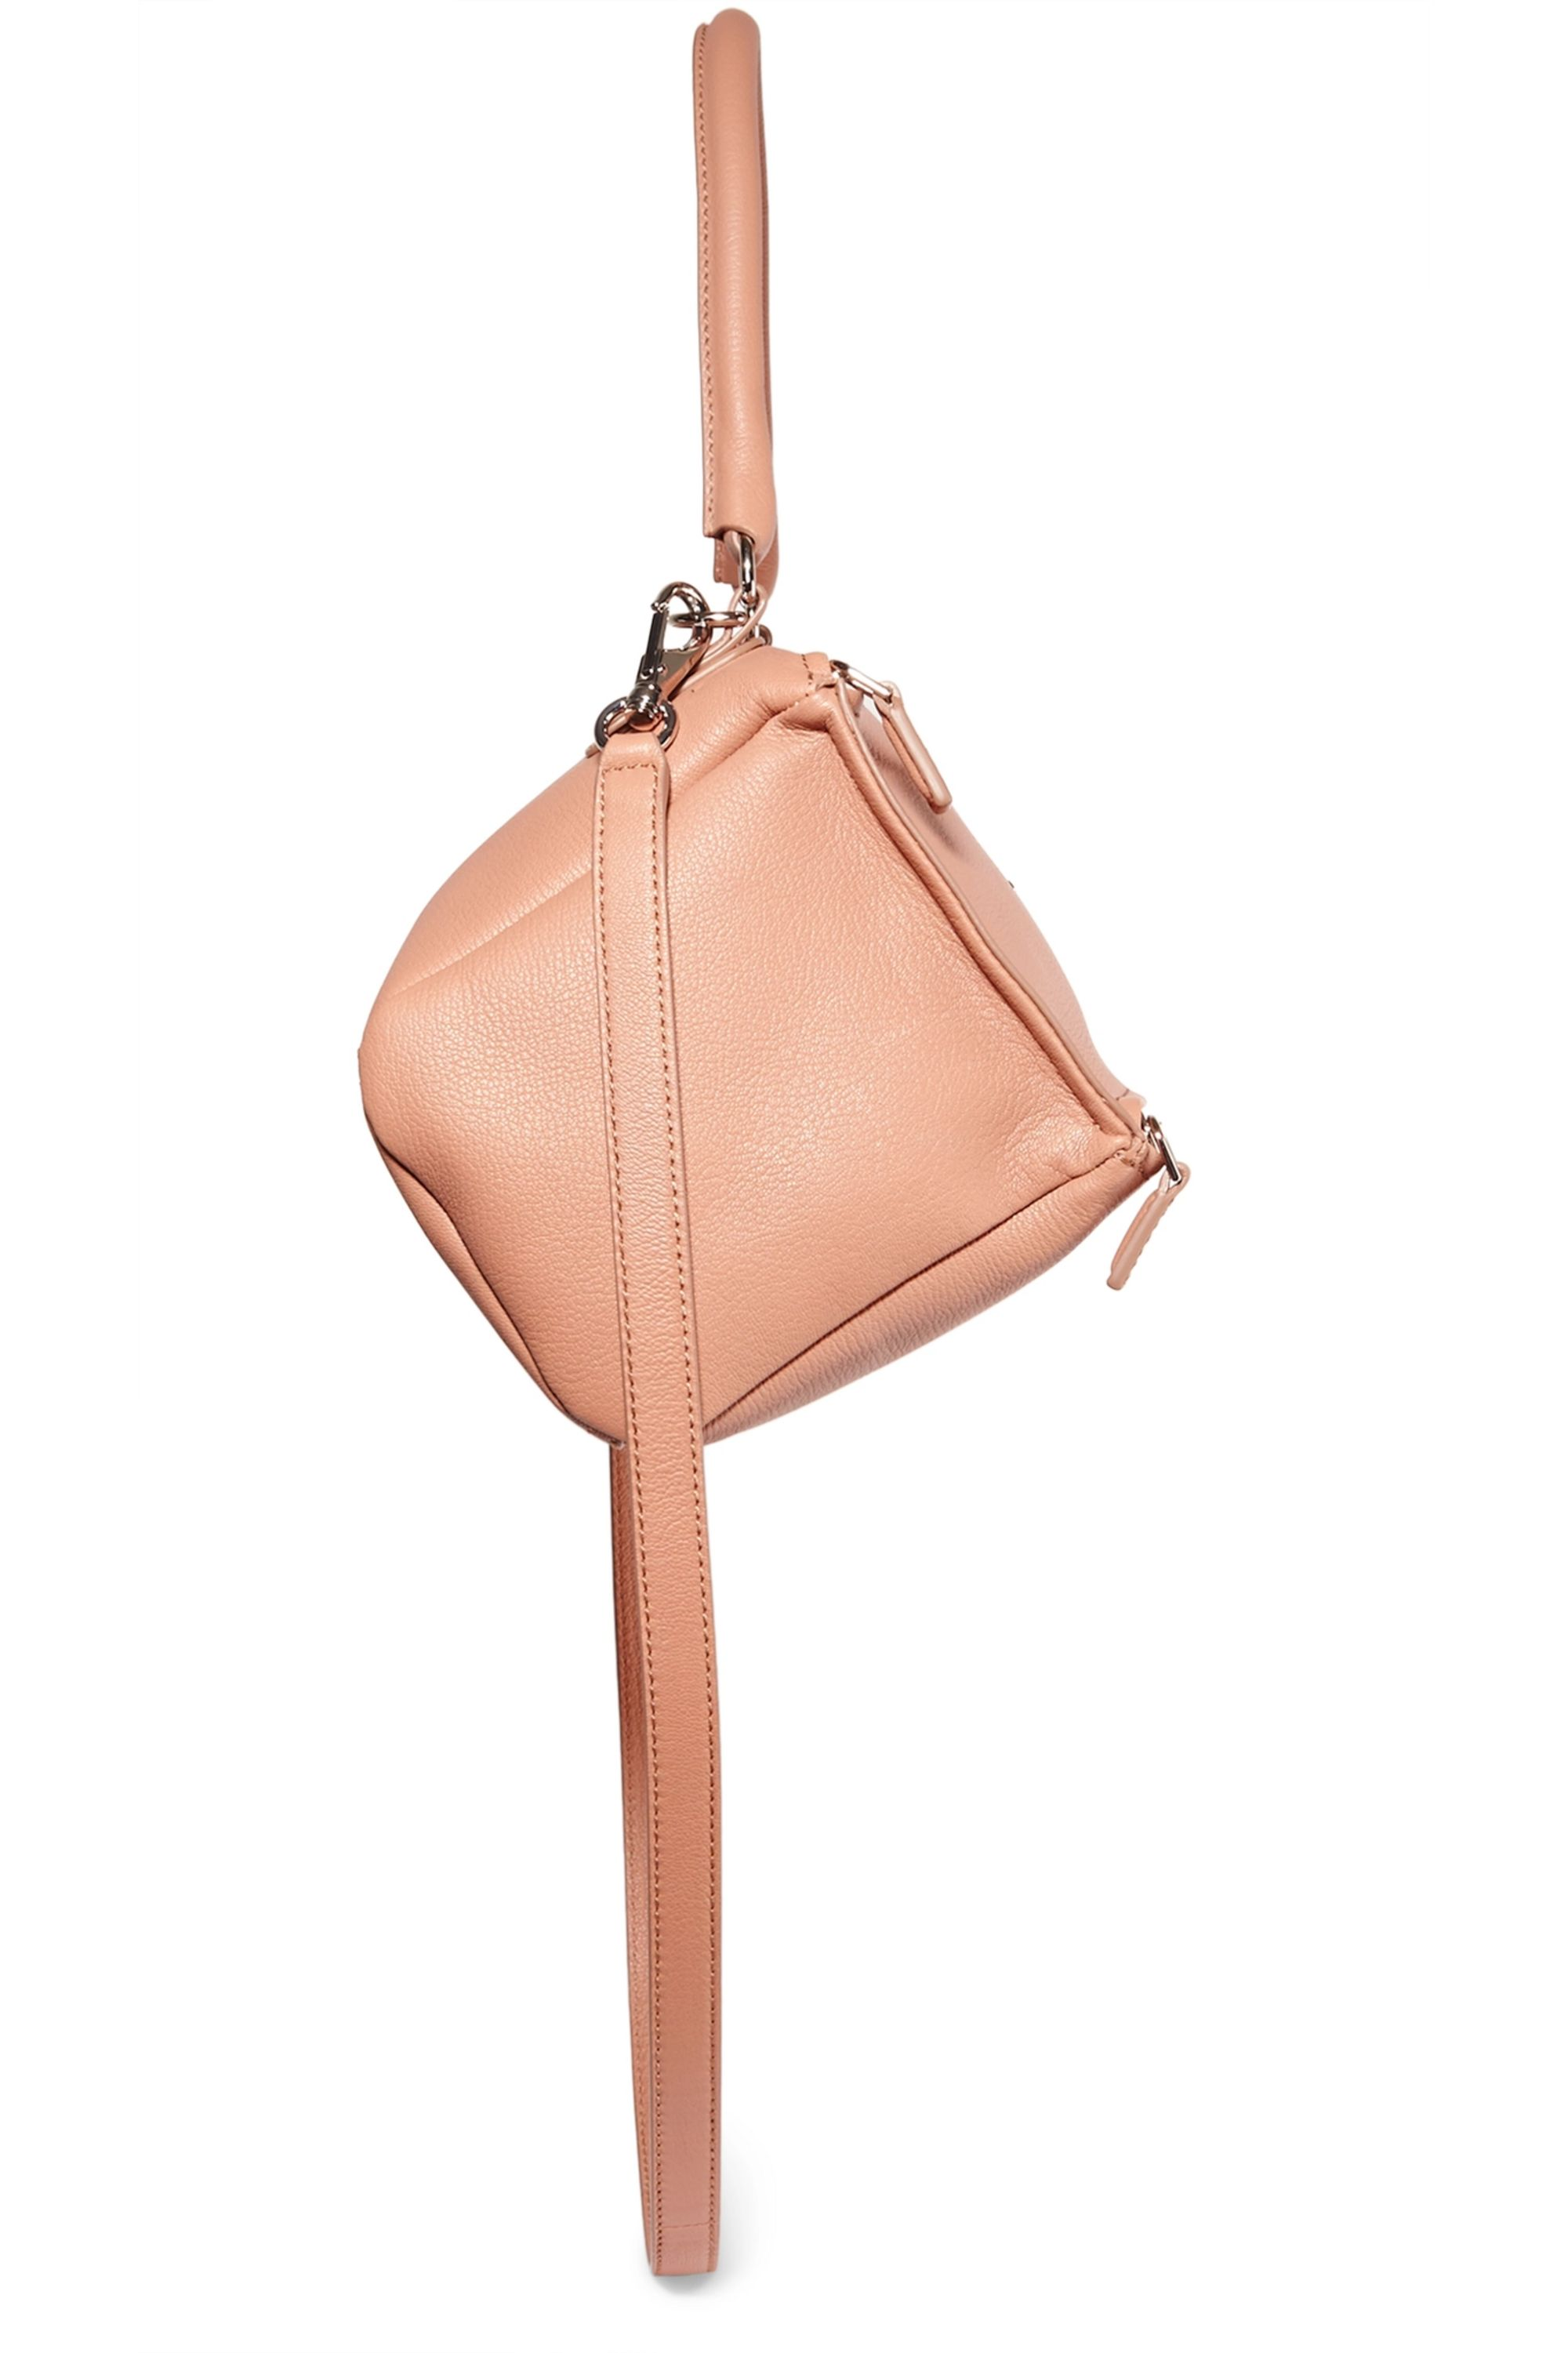 Givenchy Small Pandora shoulder bag in beige textured-leather